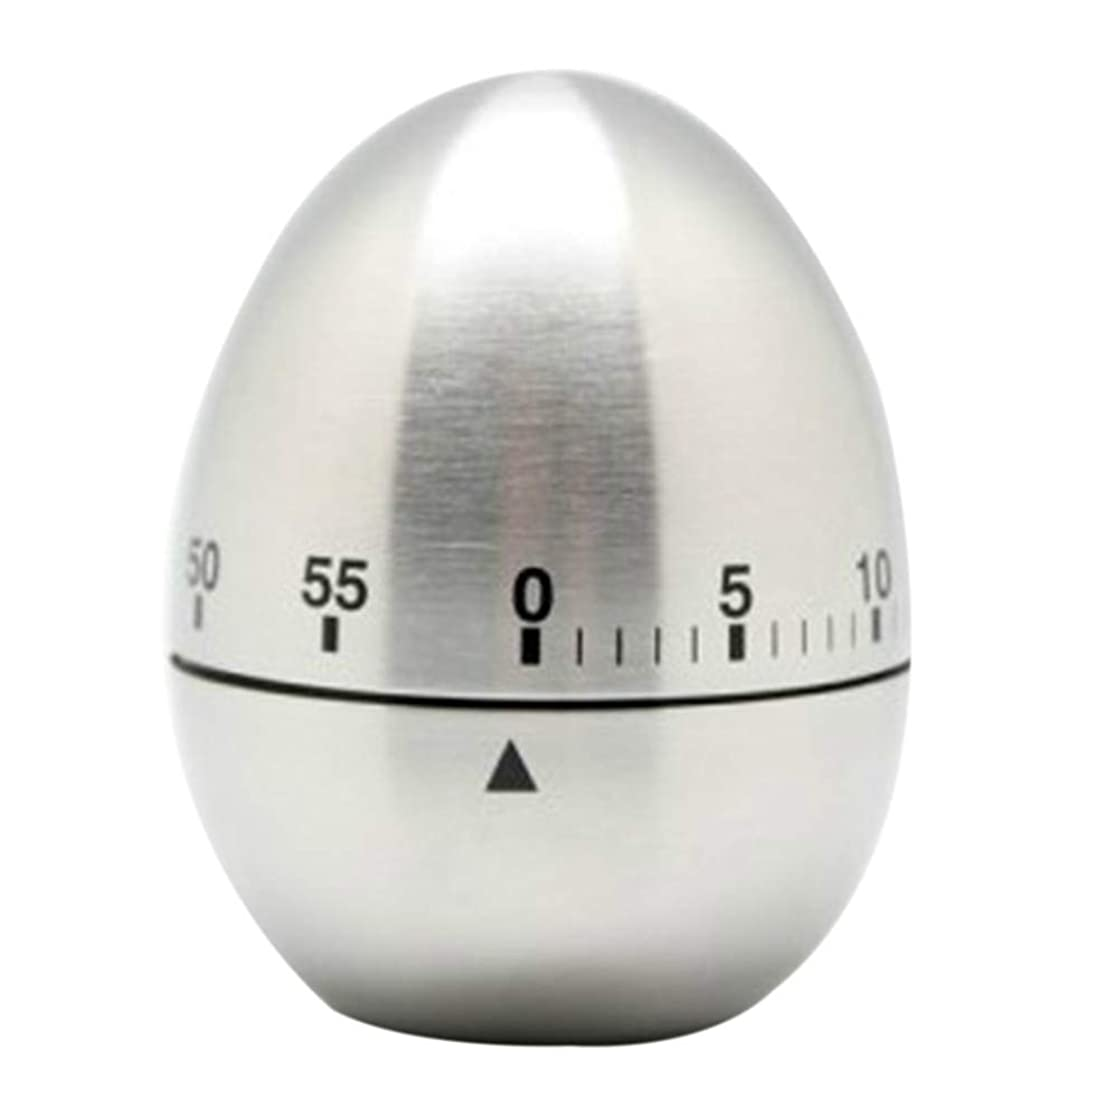 Stainless Steel Egg Kitchen Timer,Adv-one 60 Minutes Countdown Kitchen Cooking Mechanical Rotating Alarm Timer Clock Sports Games Learn Office foqseasa41531